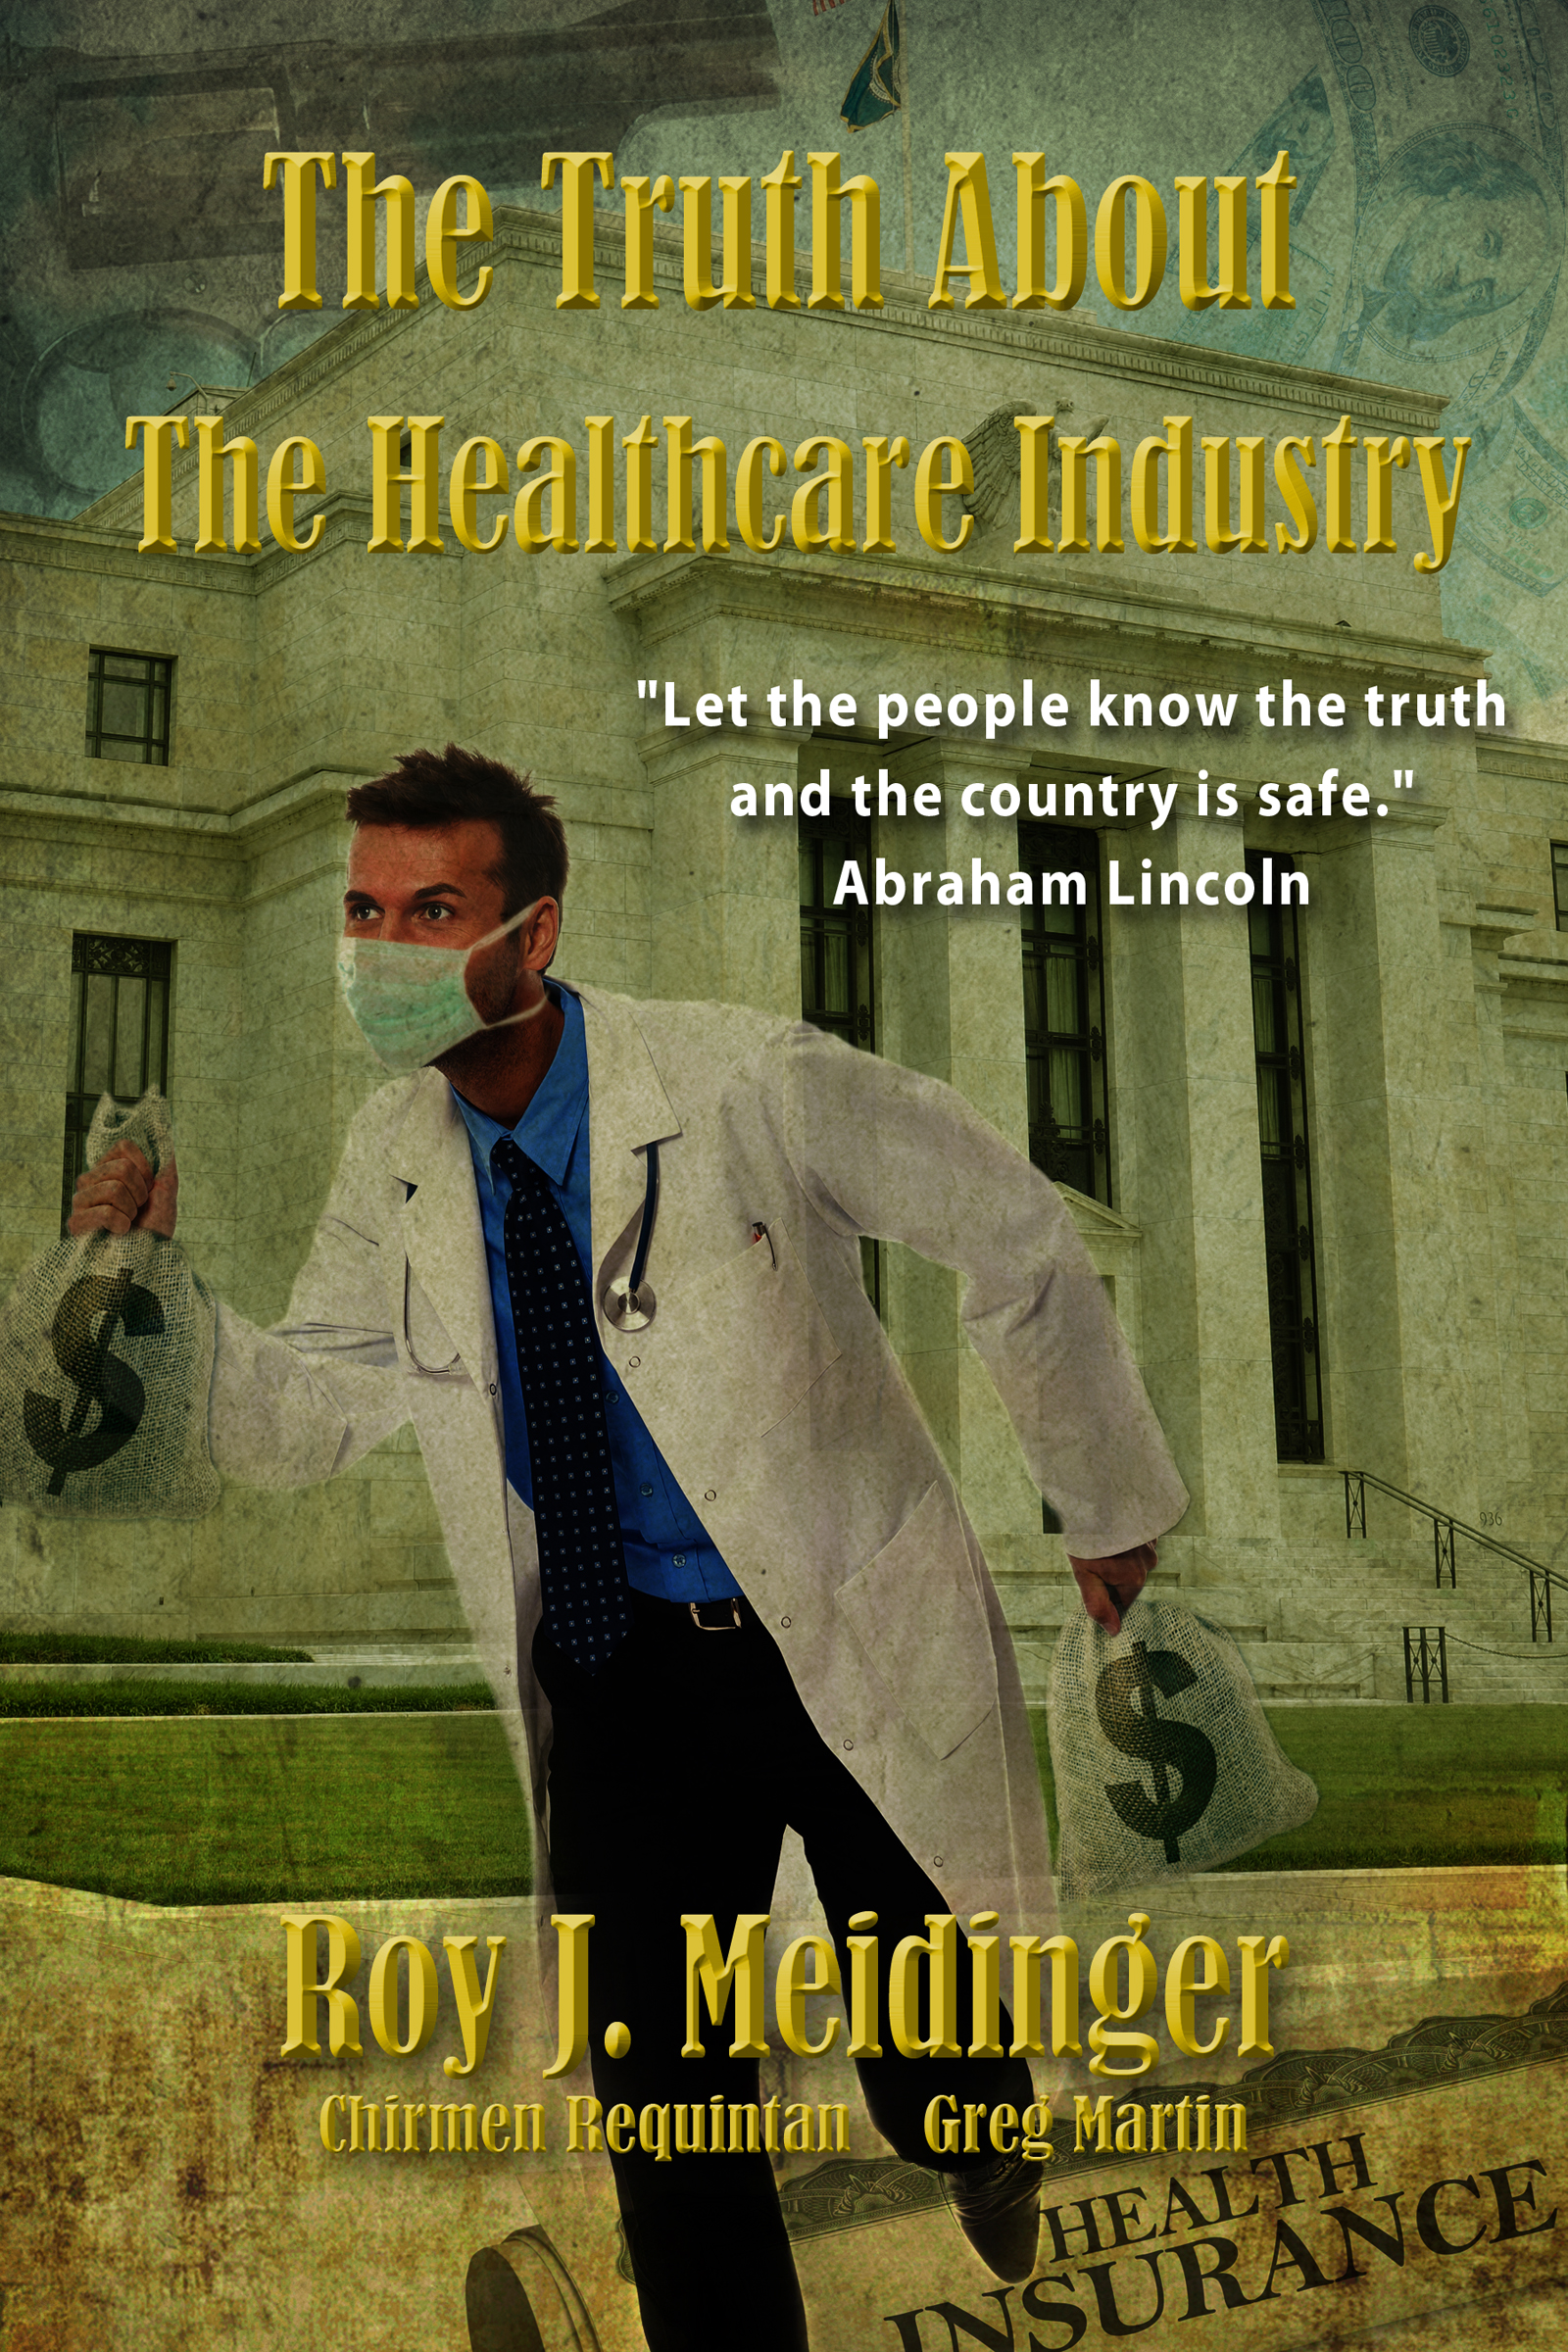 TruthAboutHealthcare1600px2400p150DPI